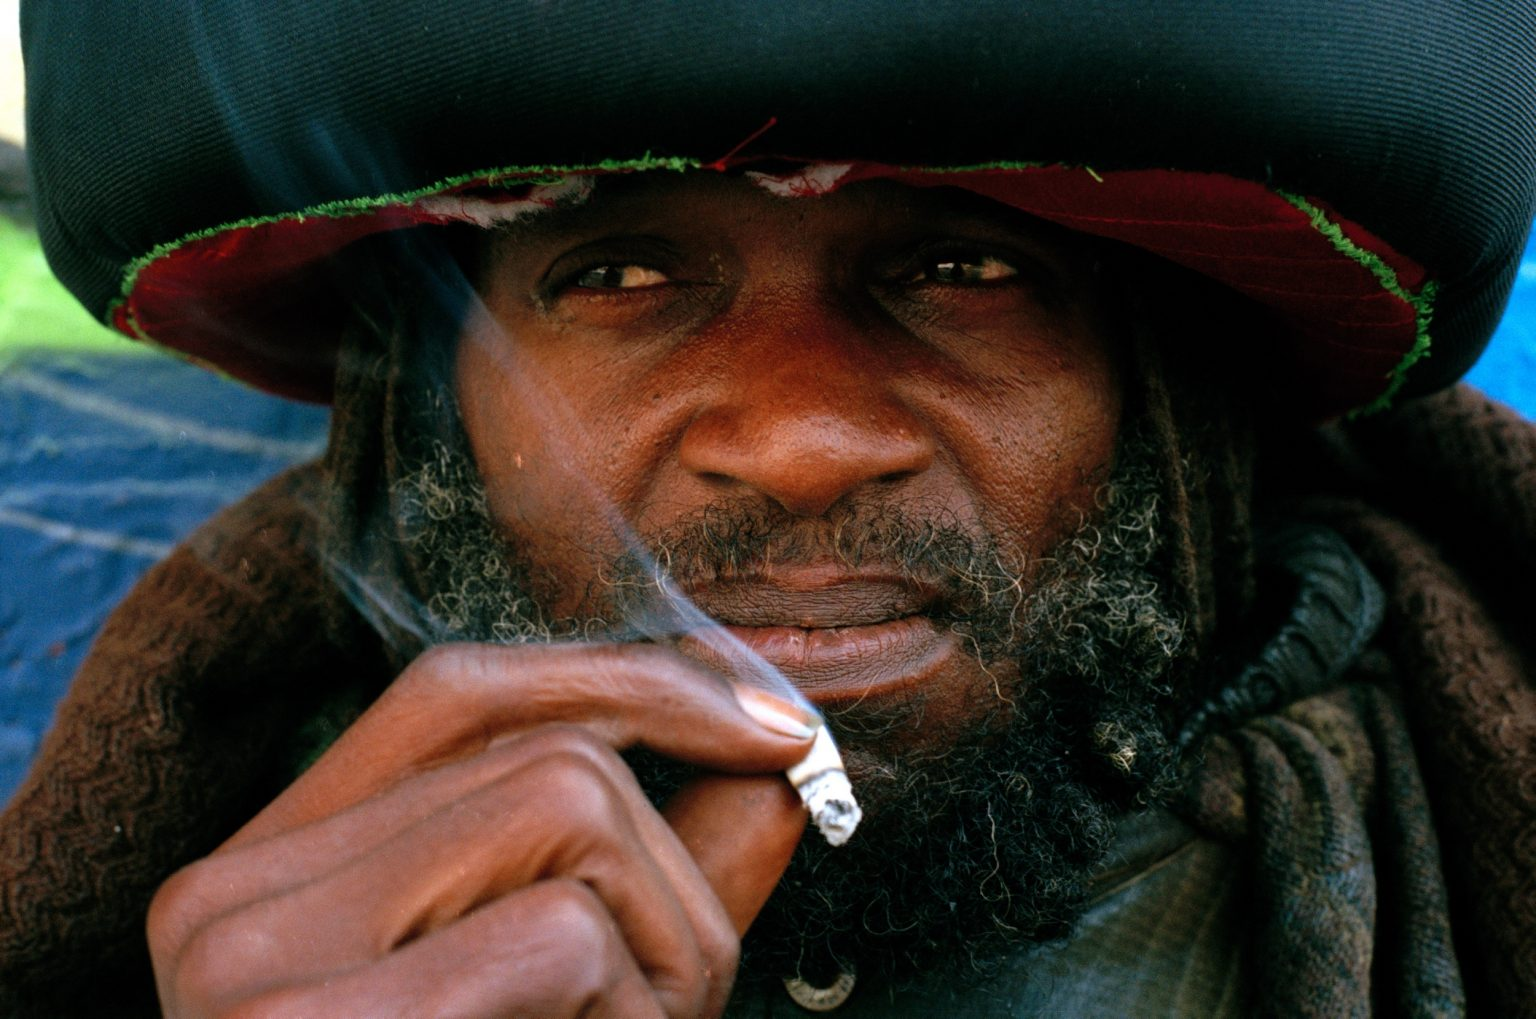 William, he is Jamaican and lives in Skid Row. Los Angeles, United States 2004-2005